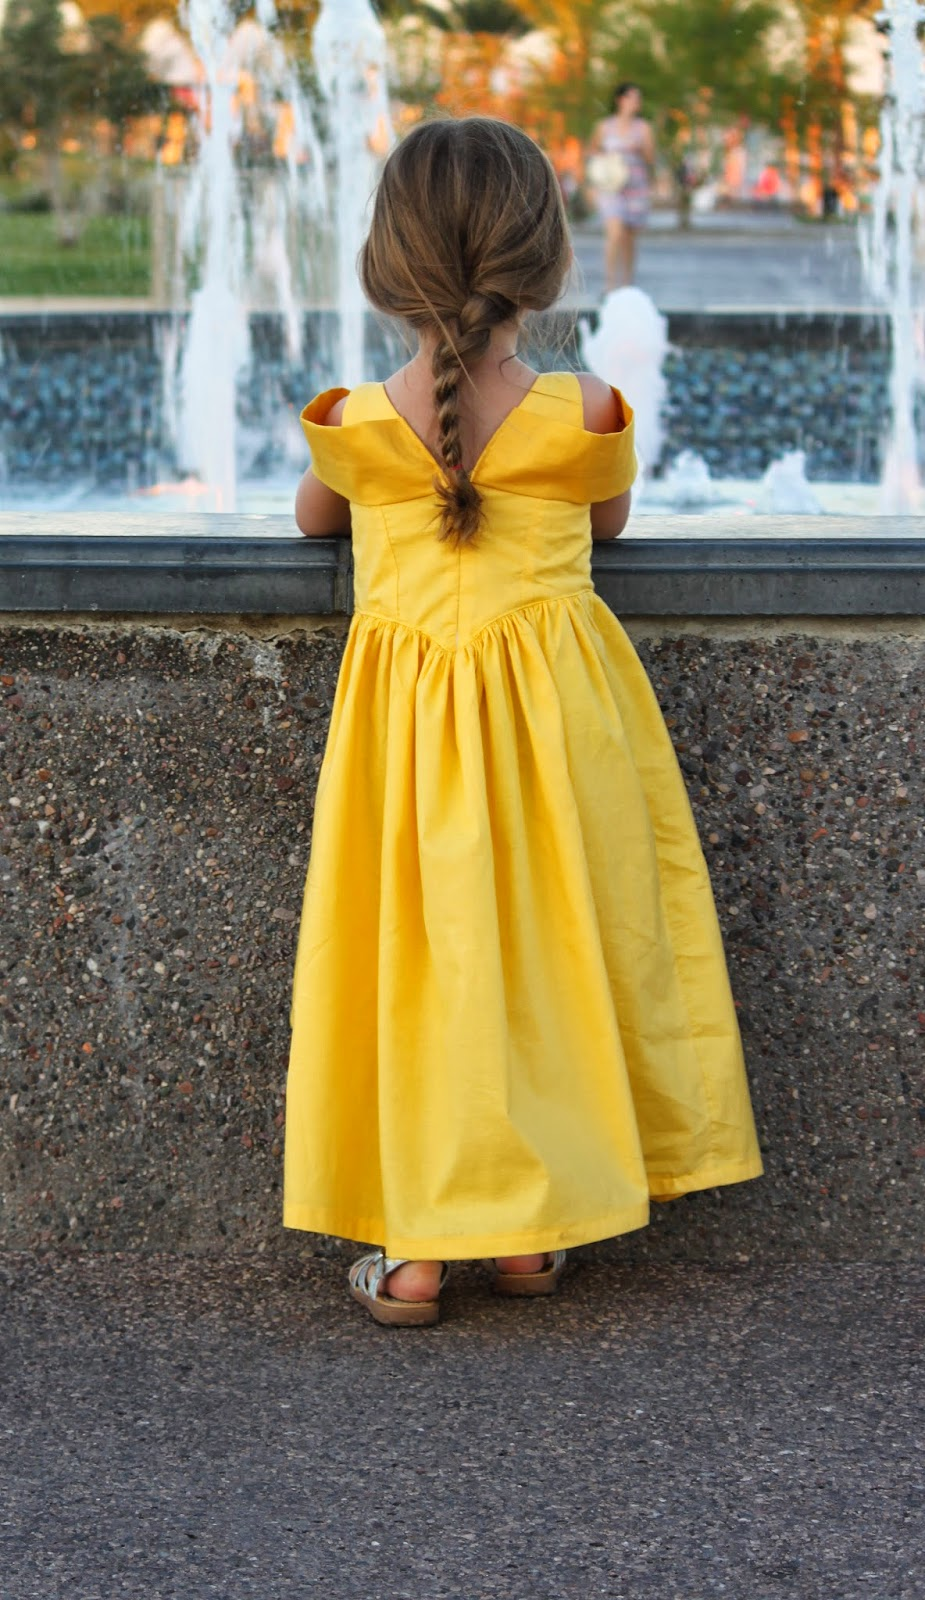 Little girl in yellow princess party dress